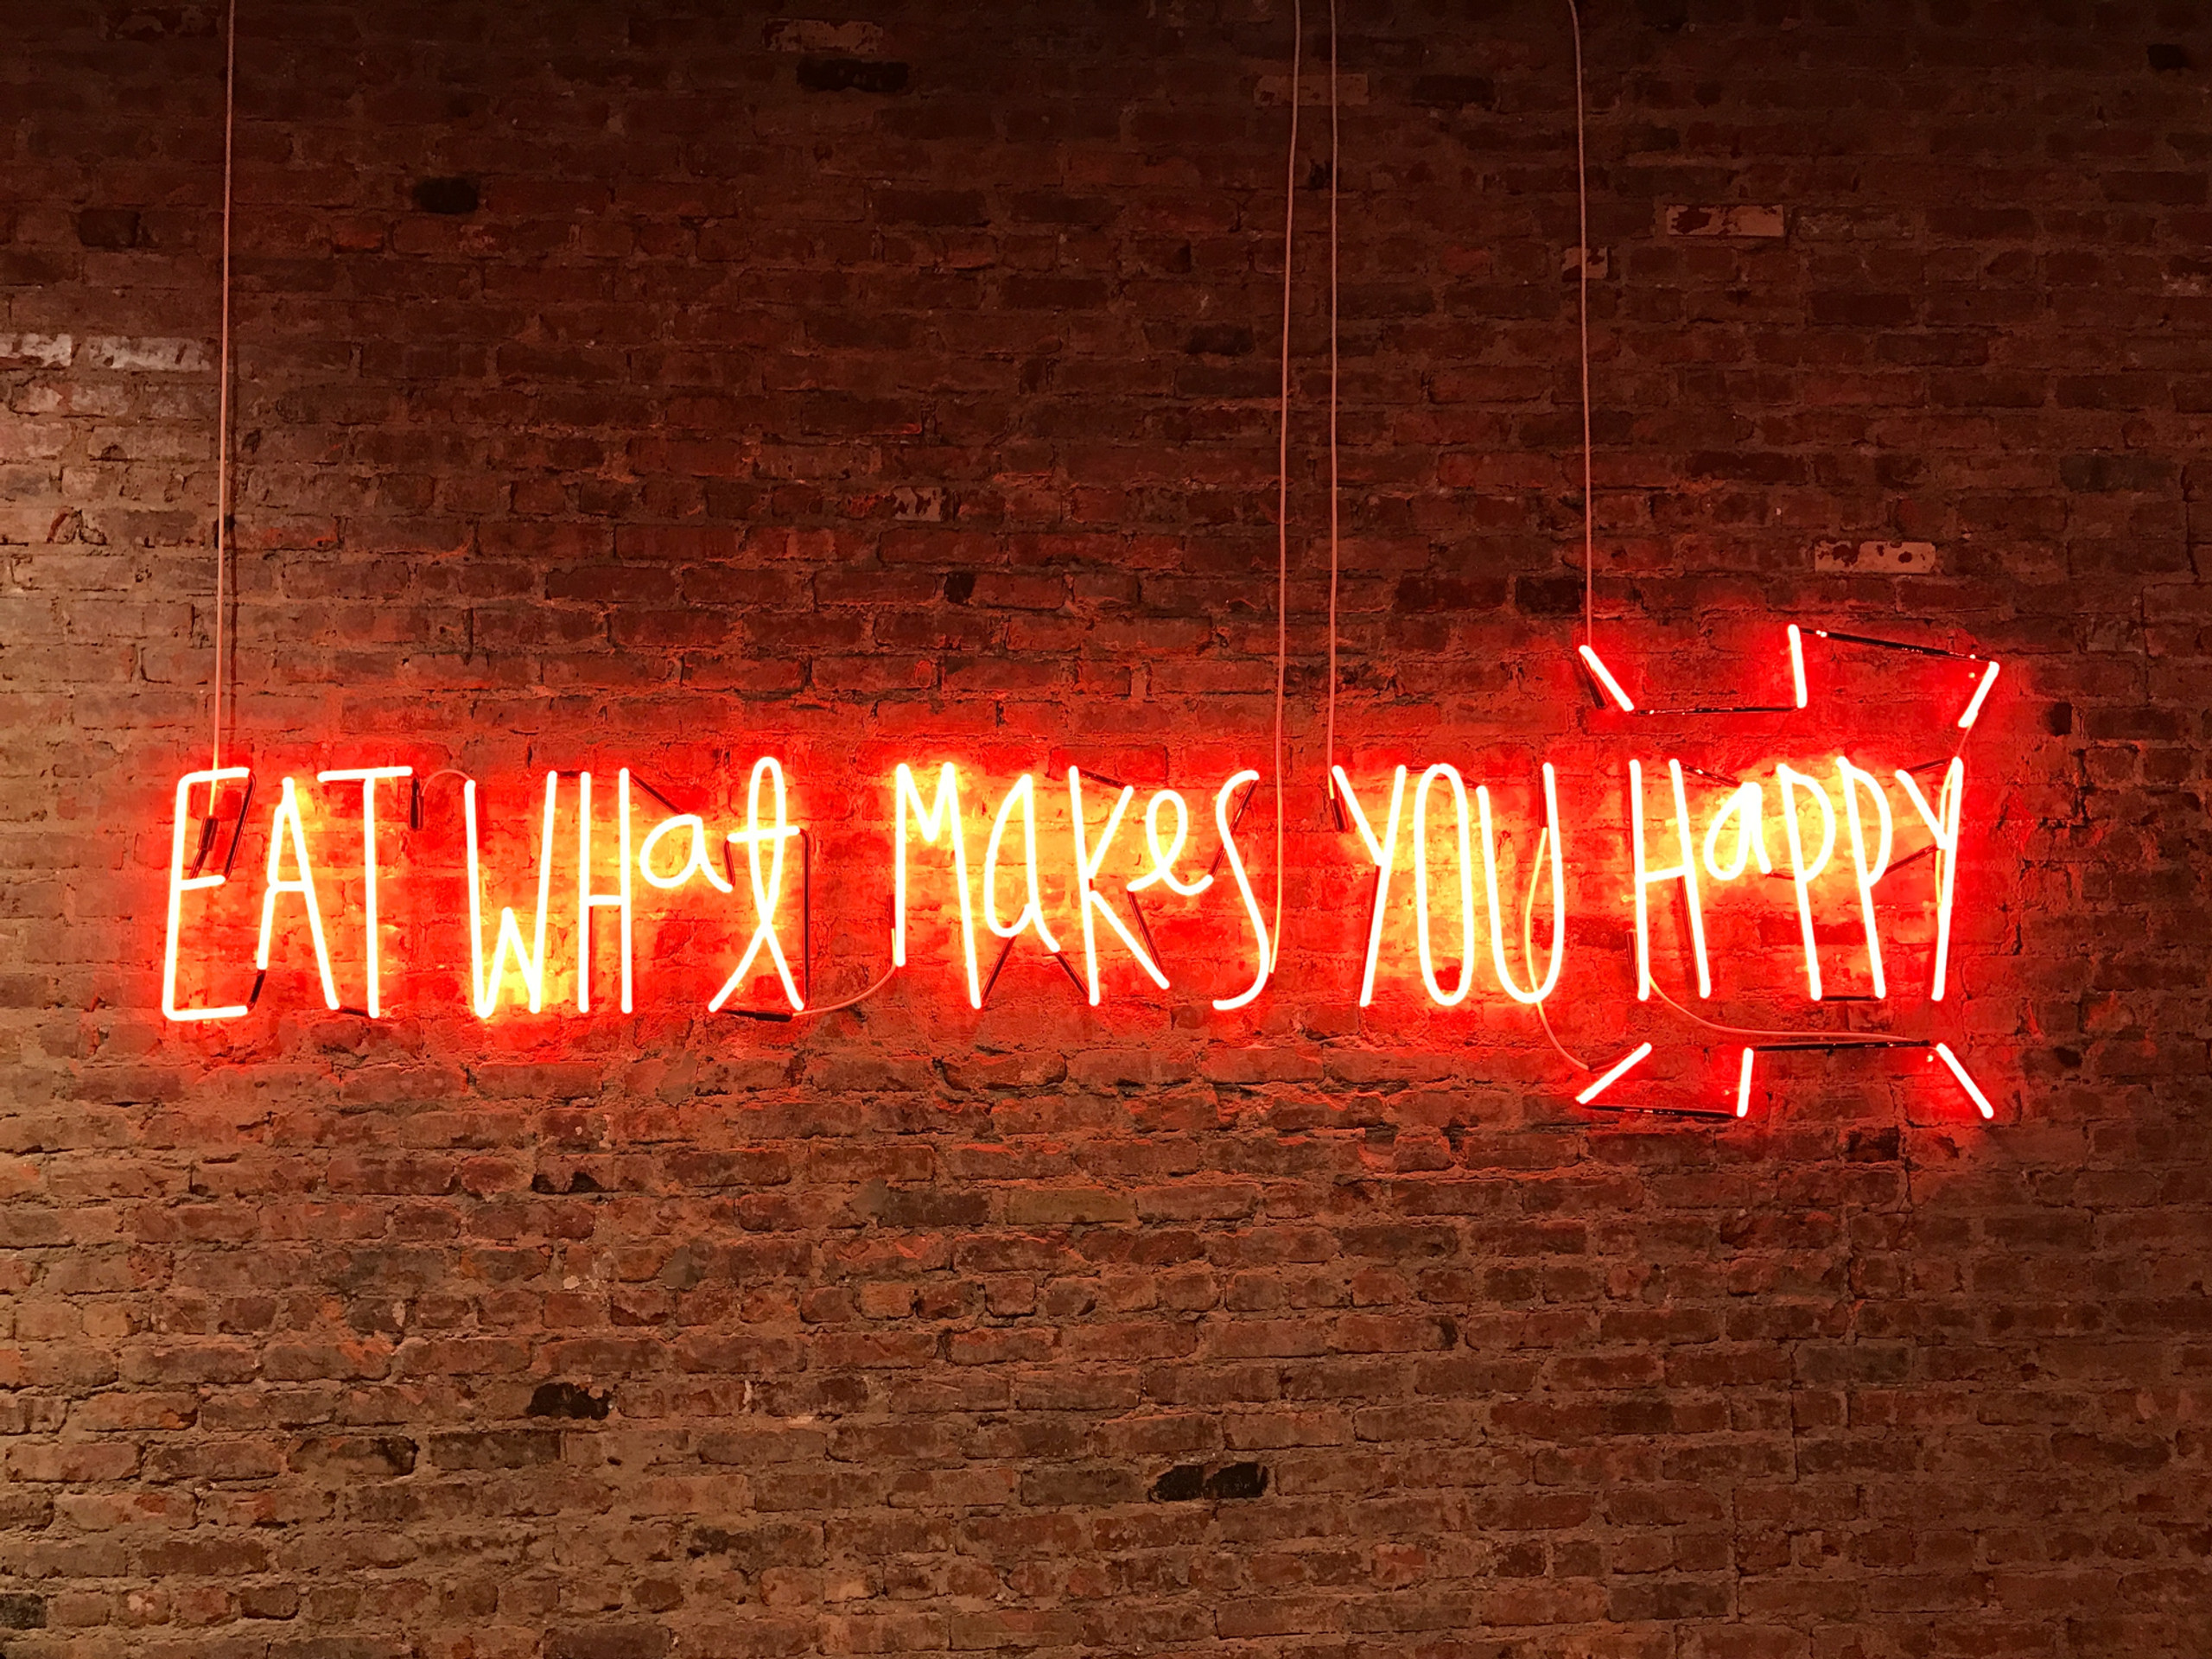 Eat what makes you happy written on the wall